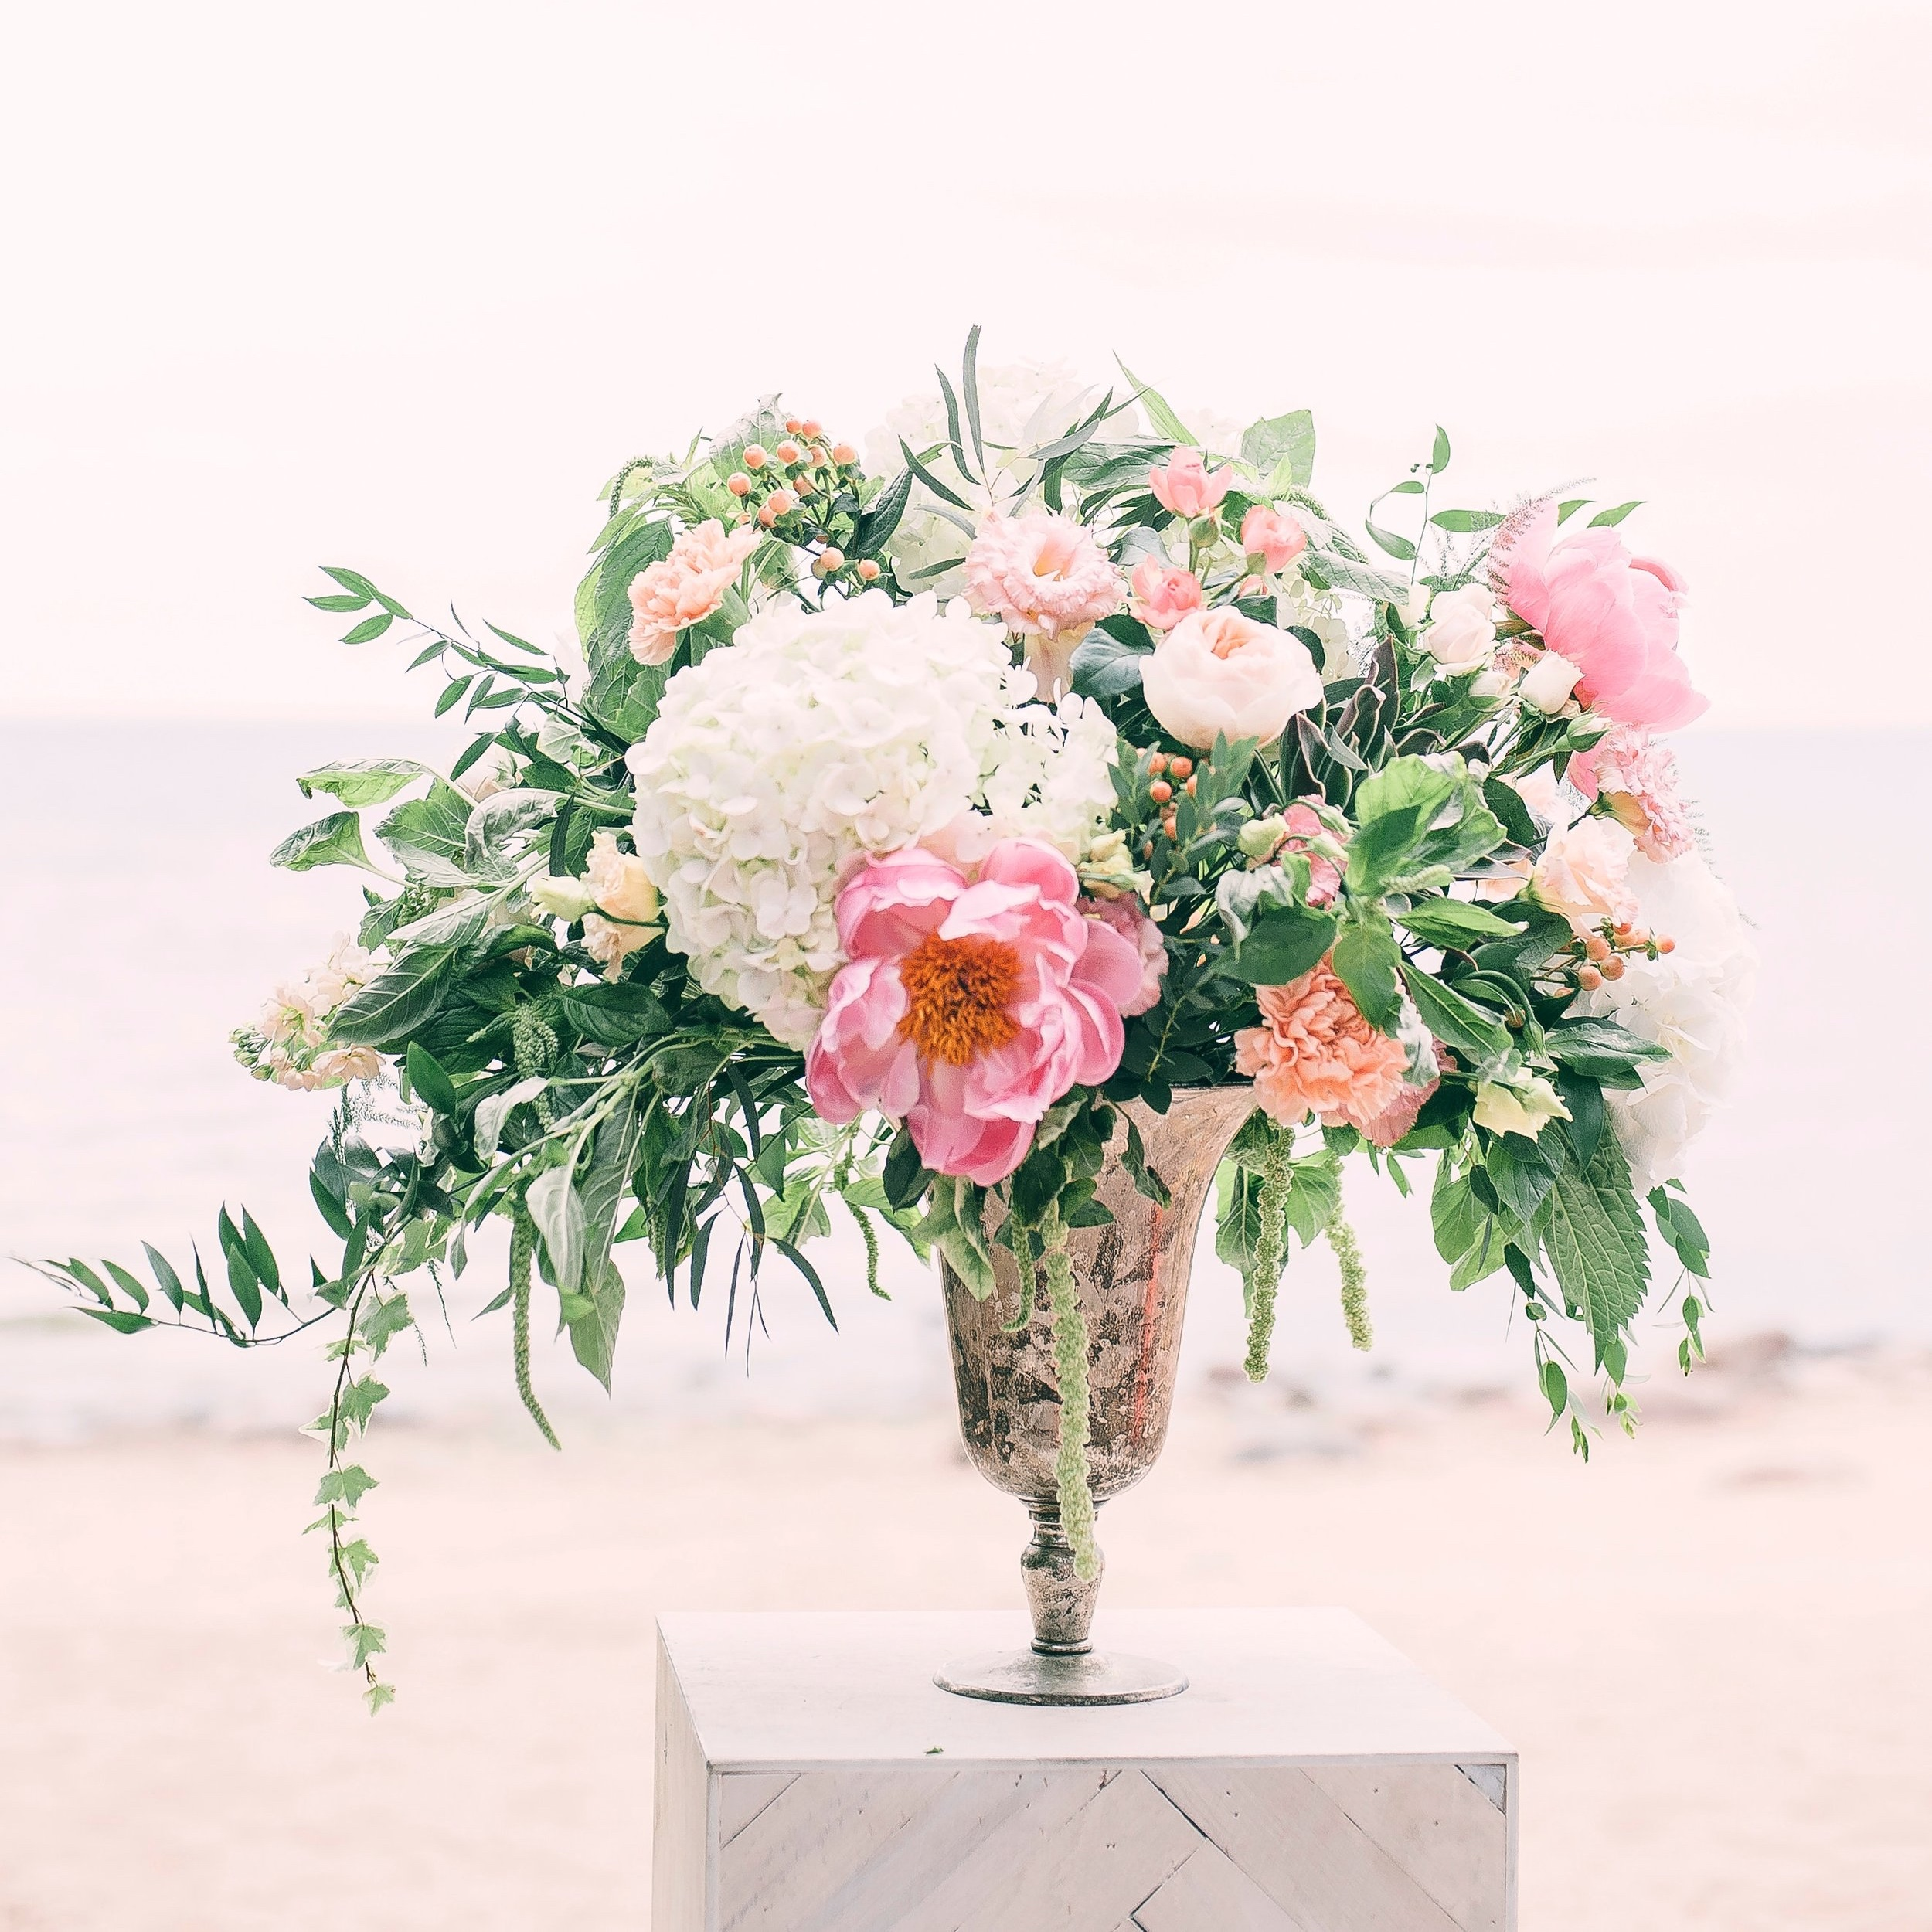 beautiful-blooming-bouquet-1070860.jpg